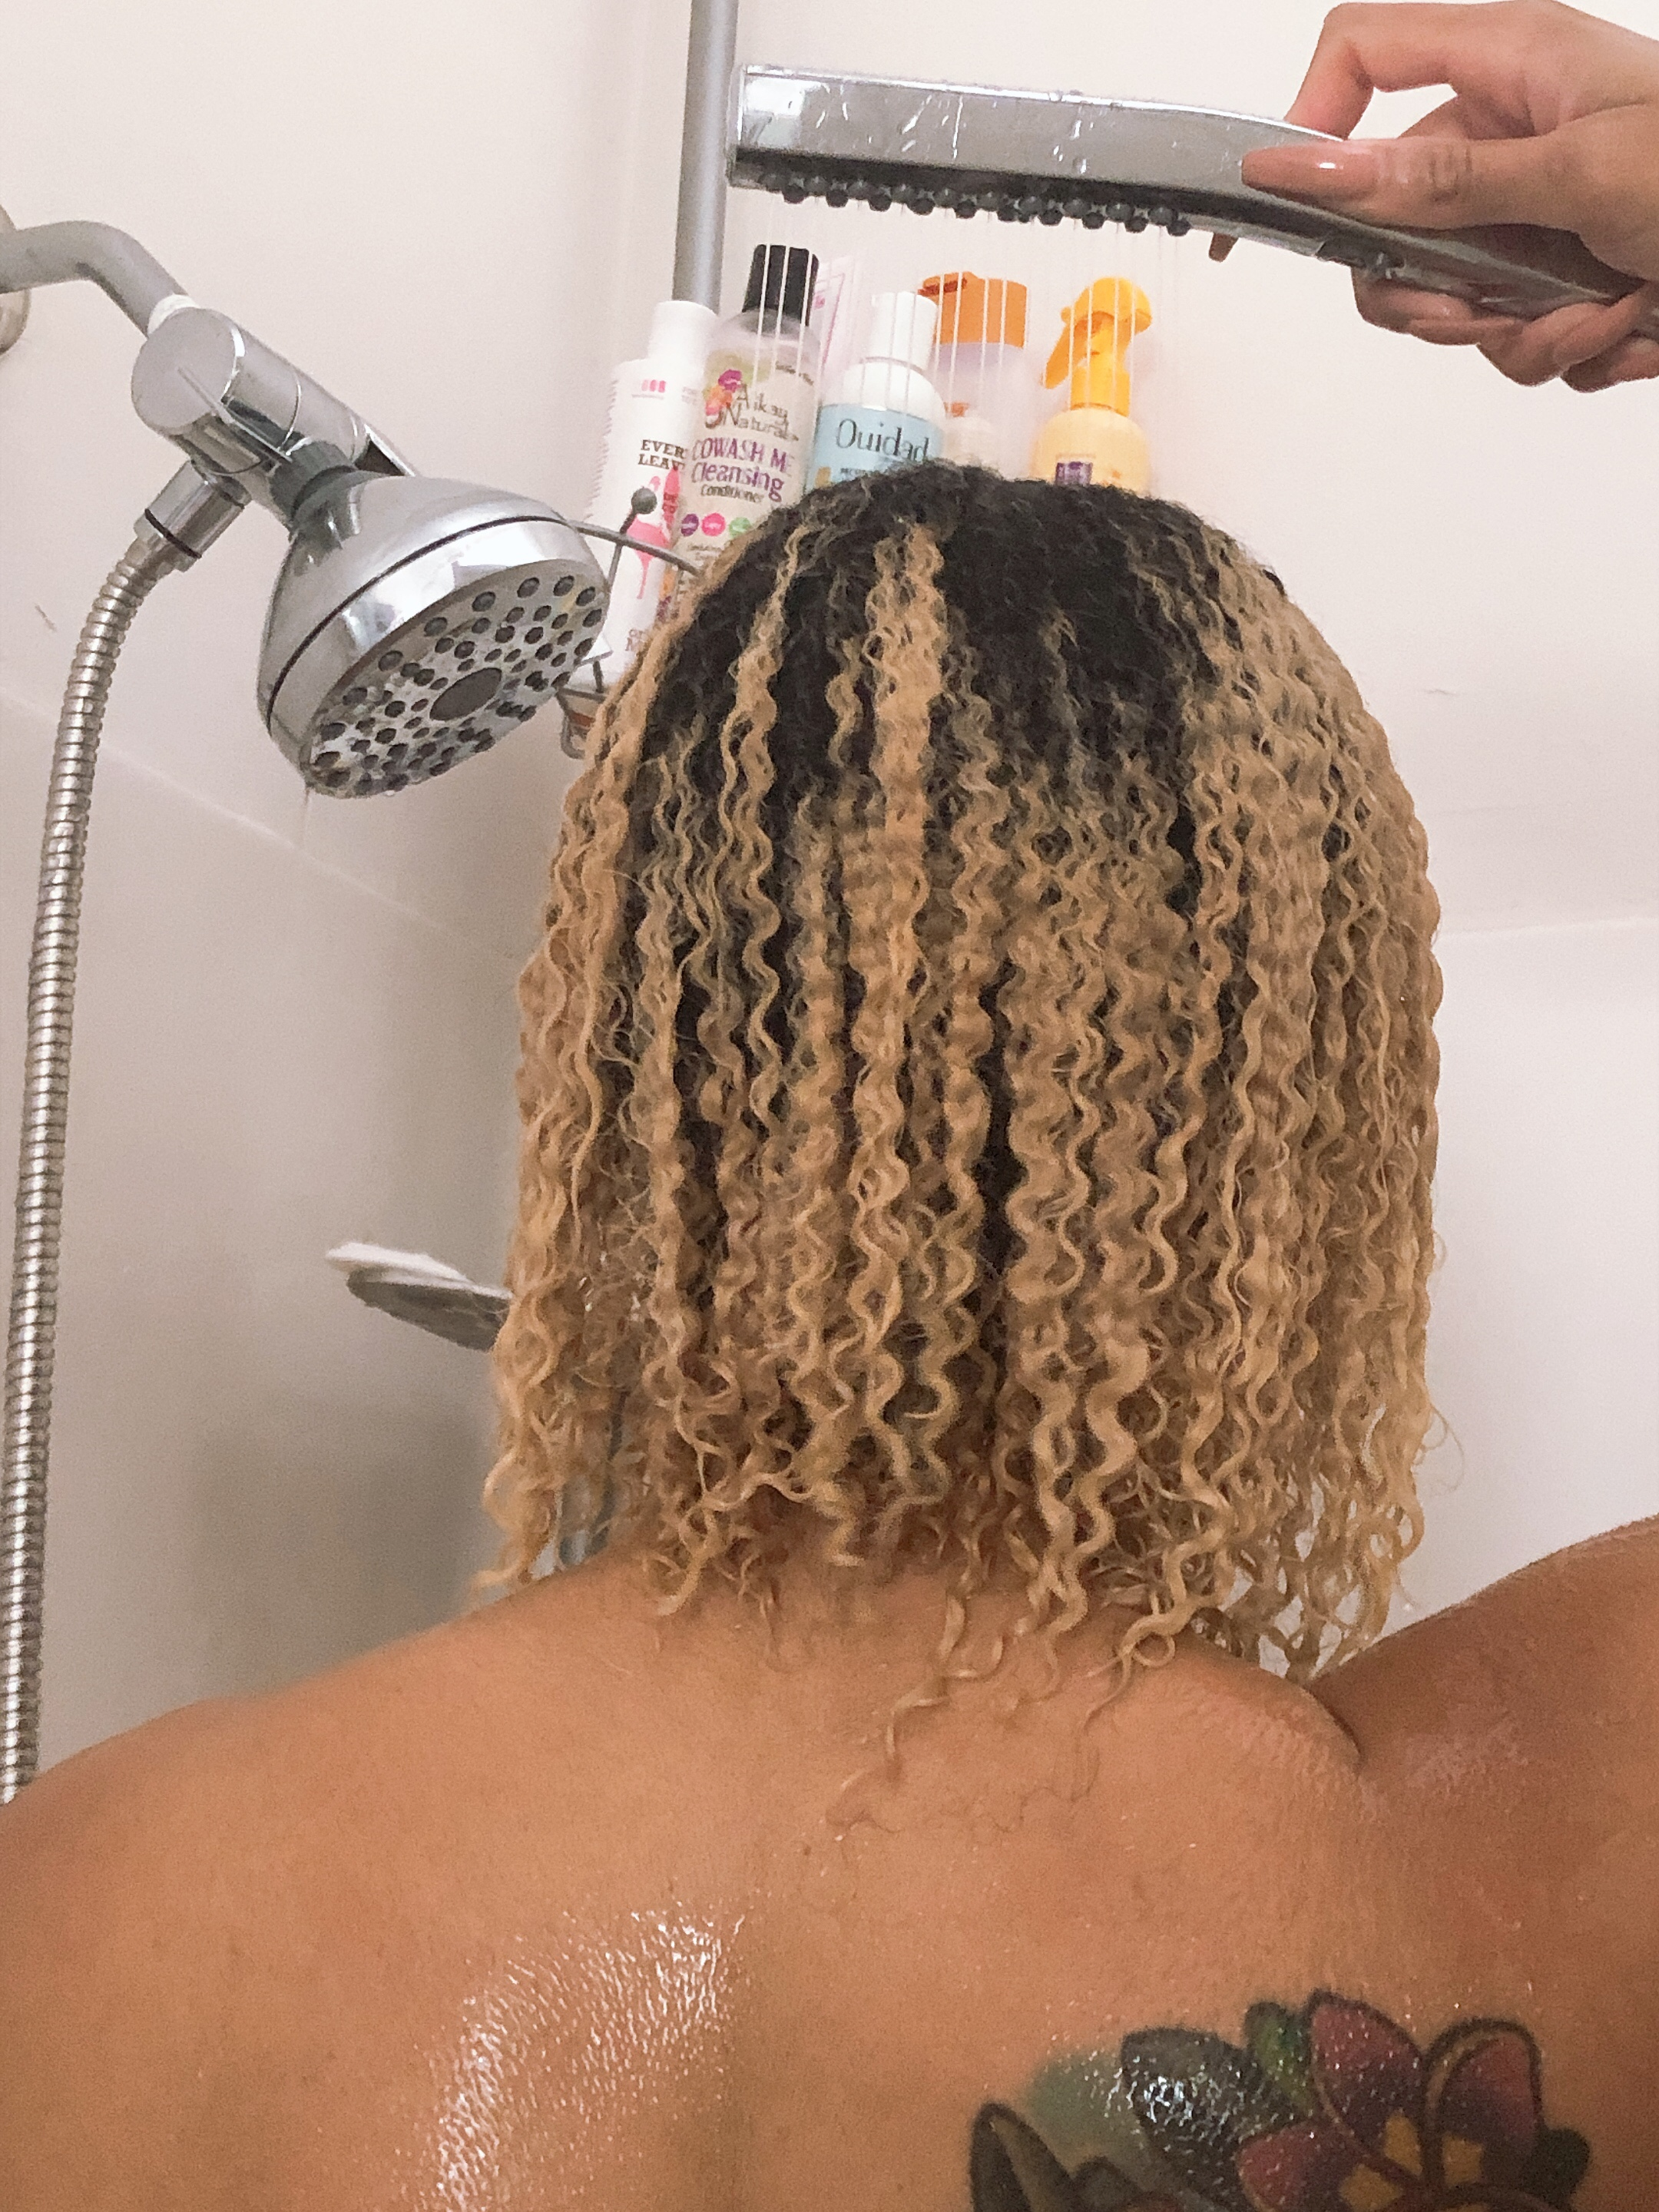 Easy Hair Washing With The @WaterpikShowers